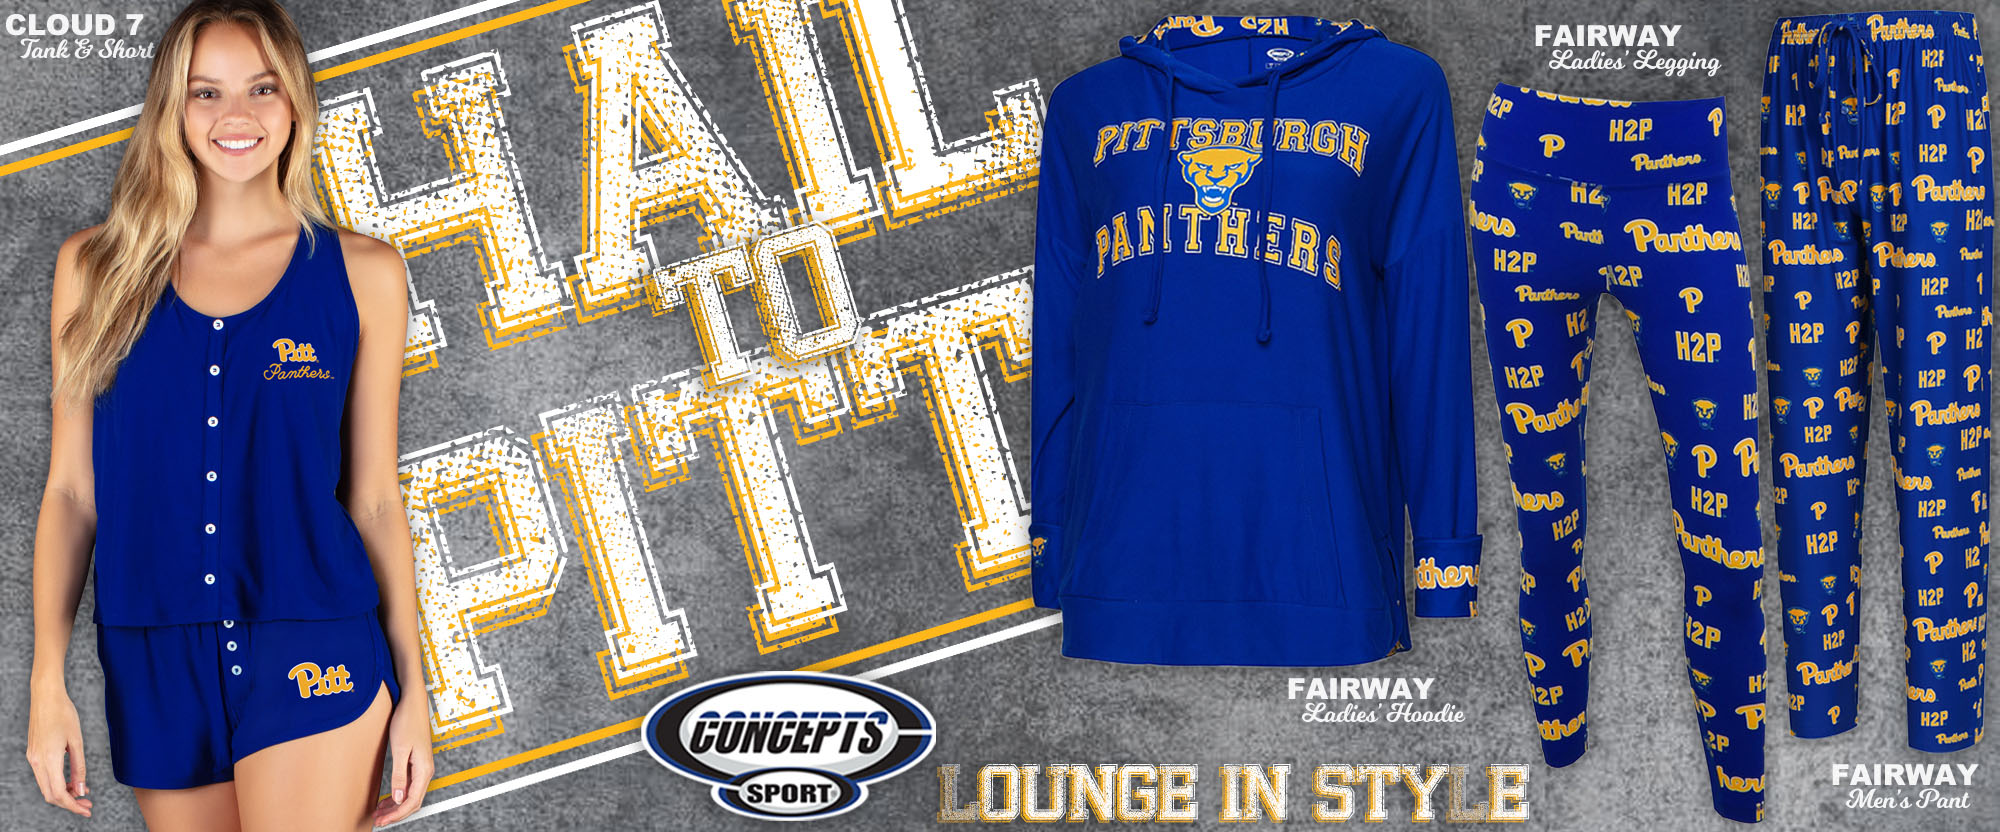 lounge in Pitt style